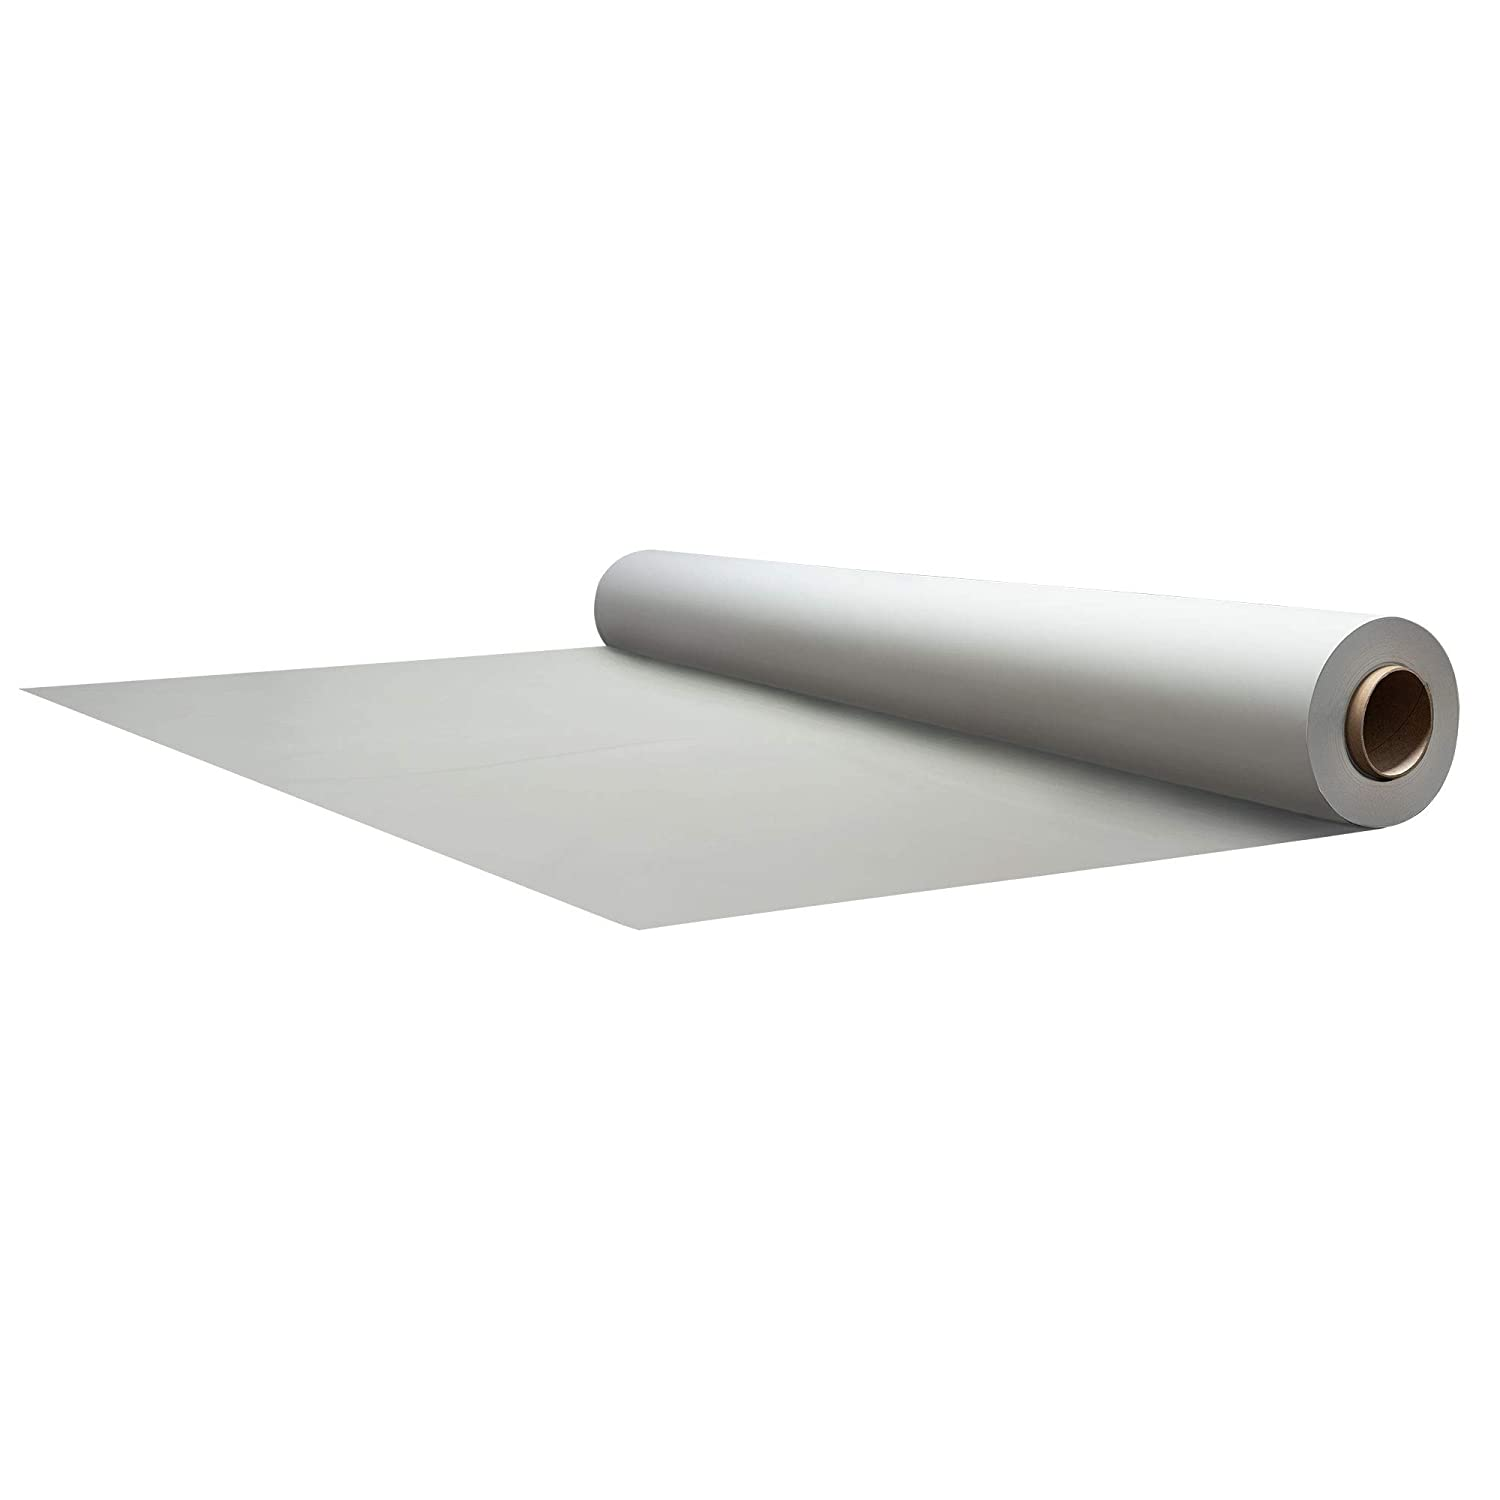 Amazon com: 4 5' SuperFlex RV Rubber Roofing | Sold By The